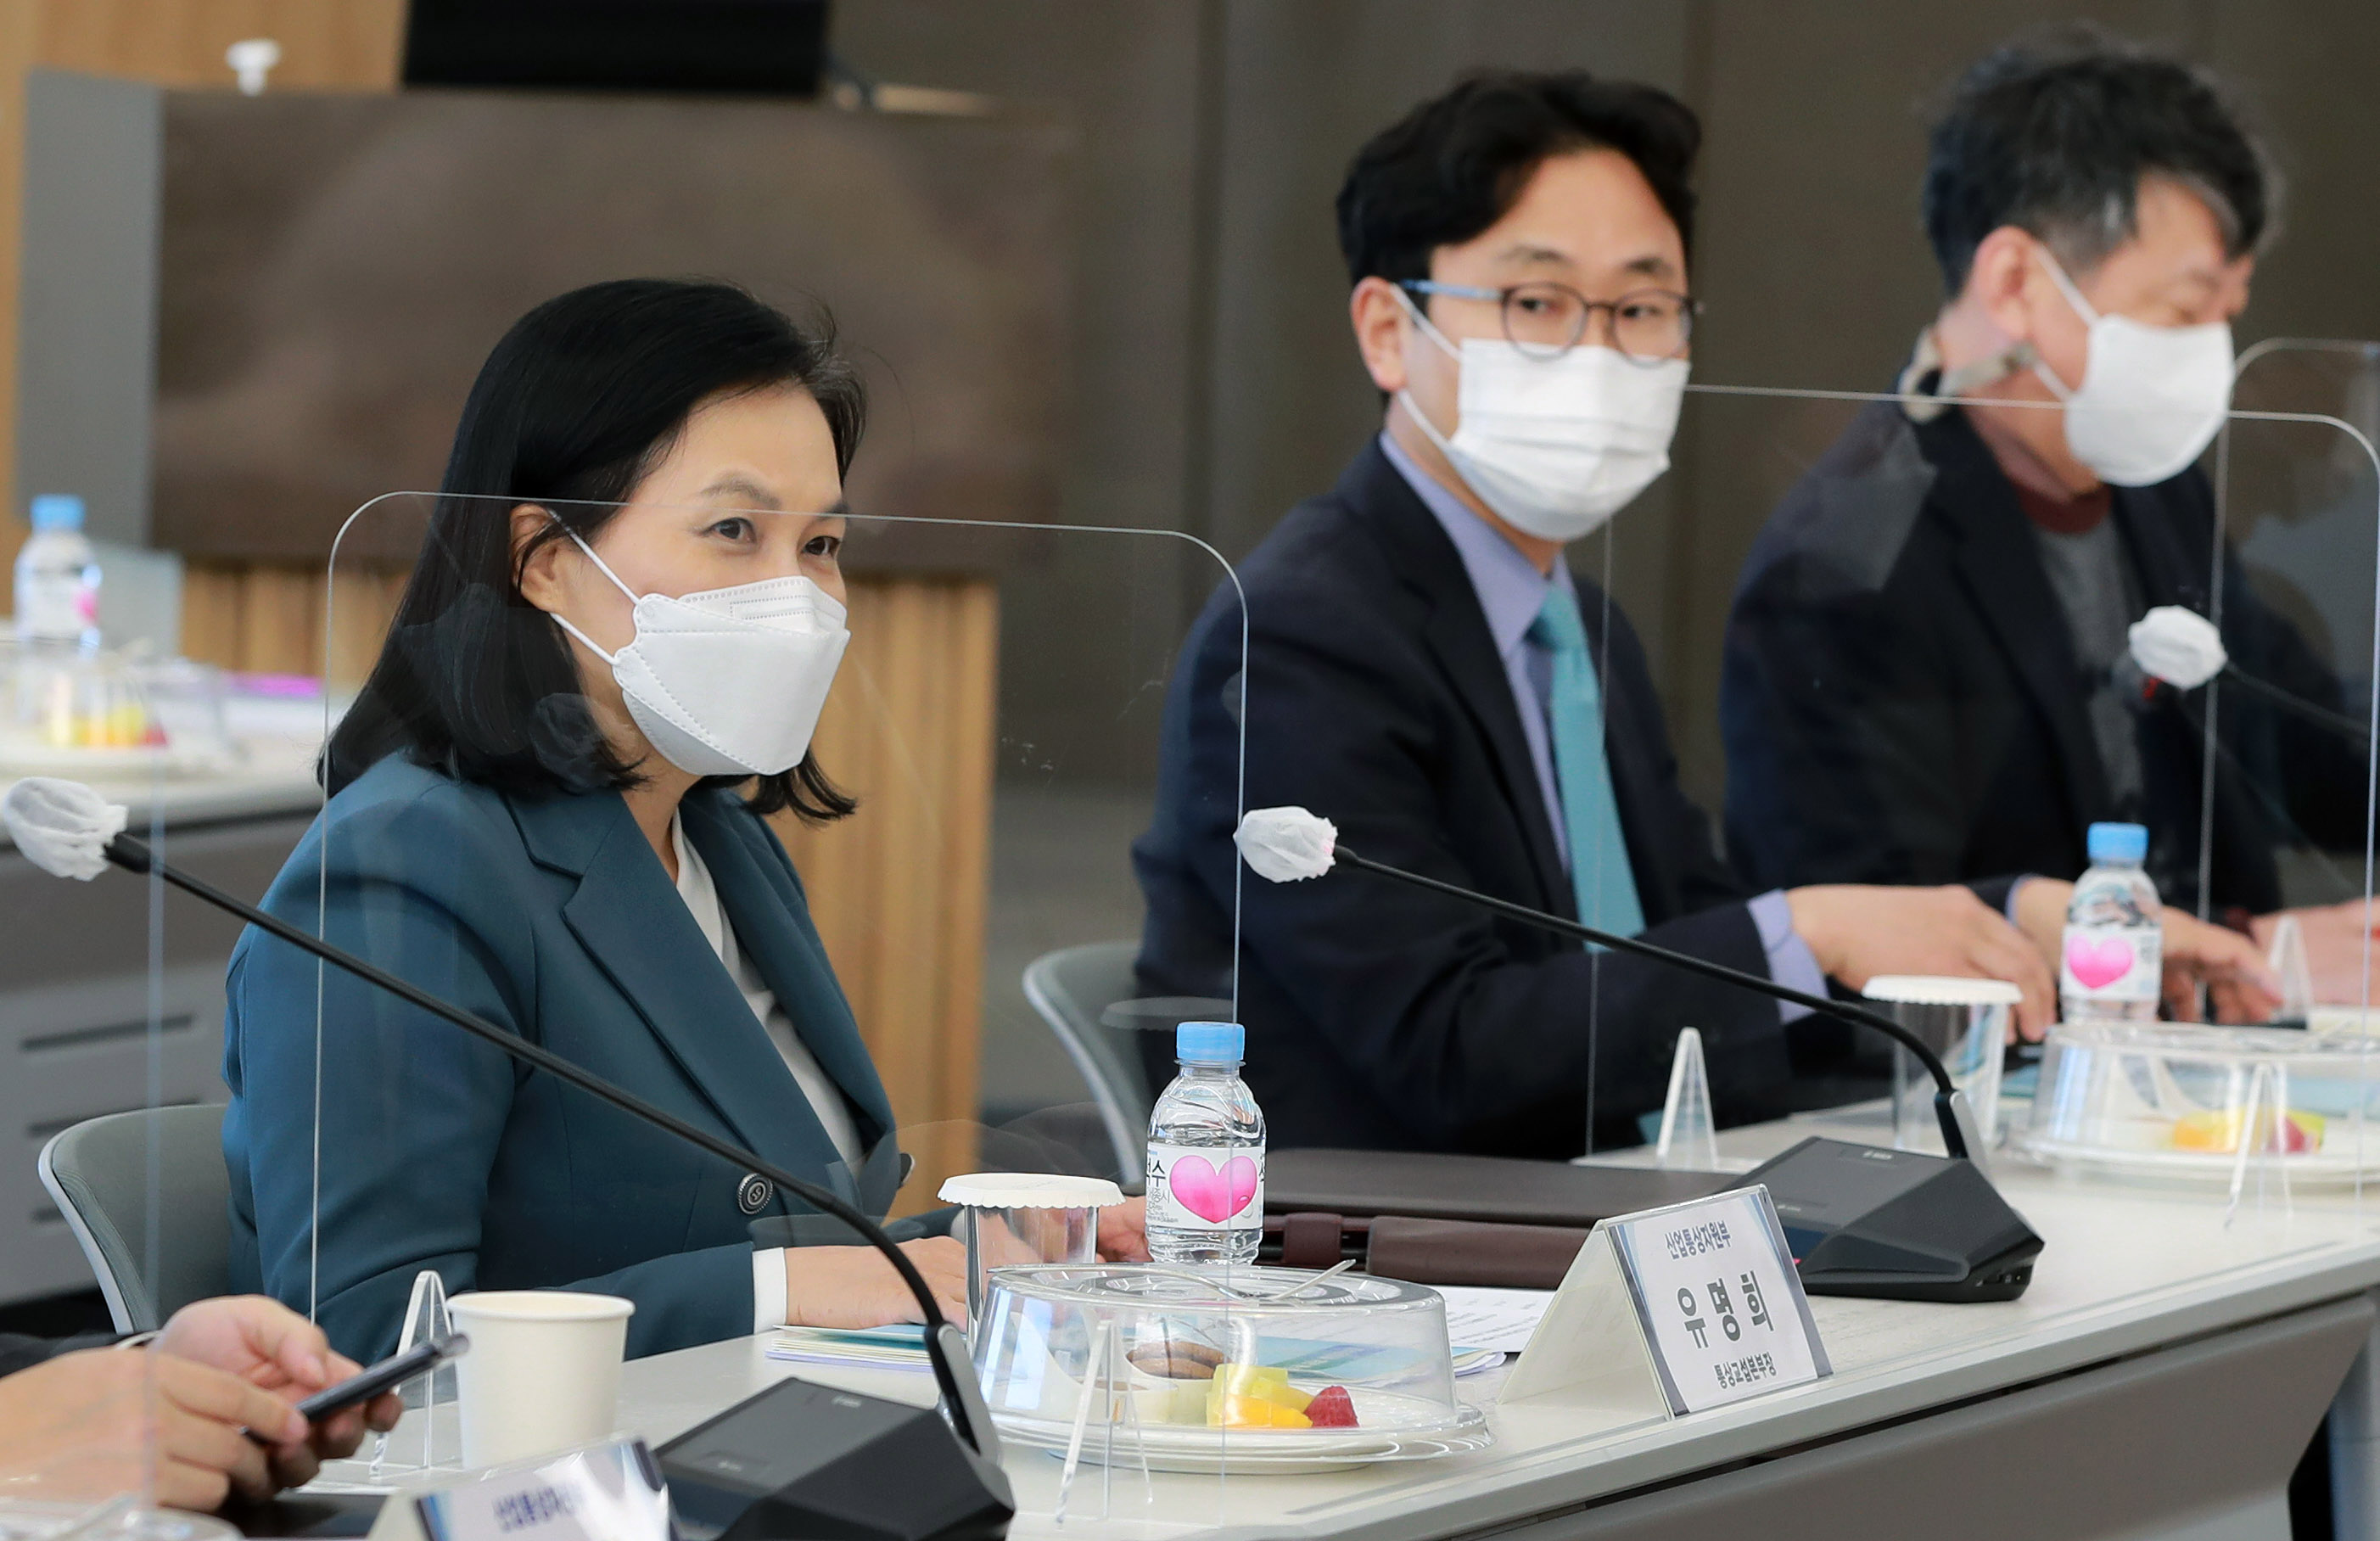 Trade Minister Yoo attends forum to discuss trade strategy on environmental issues